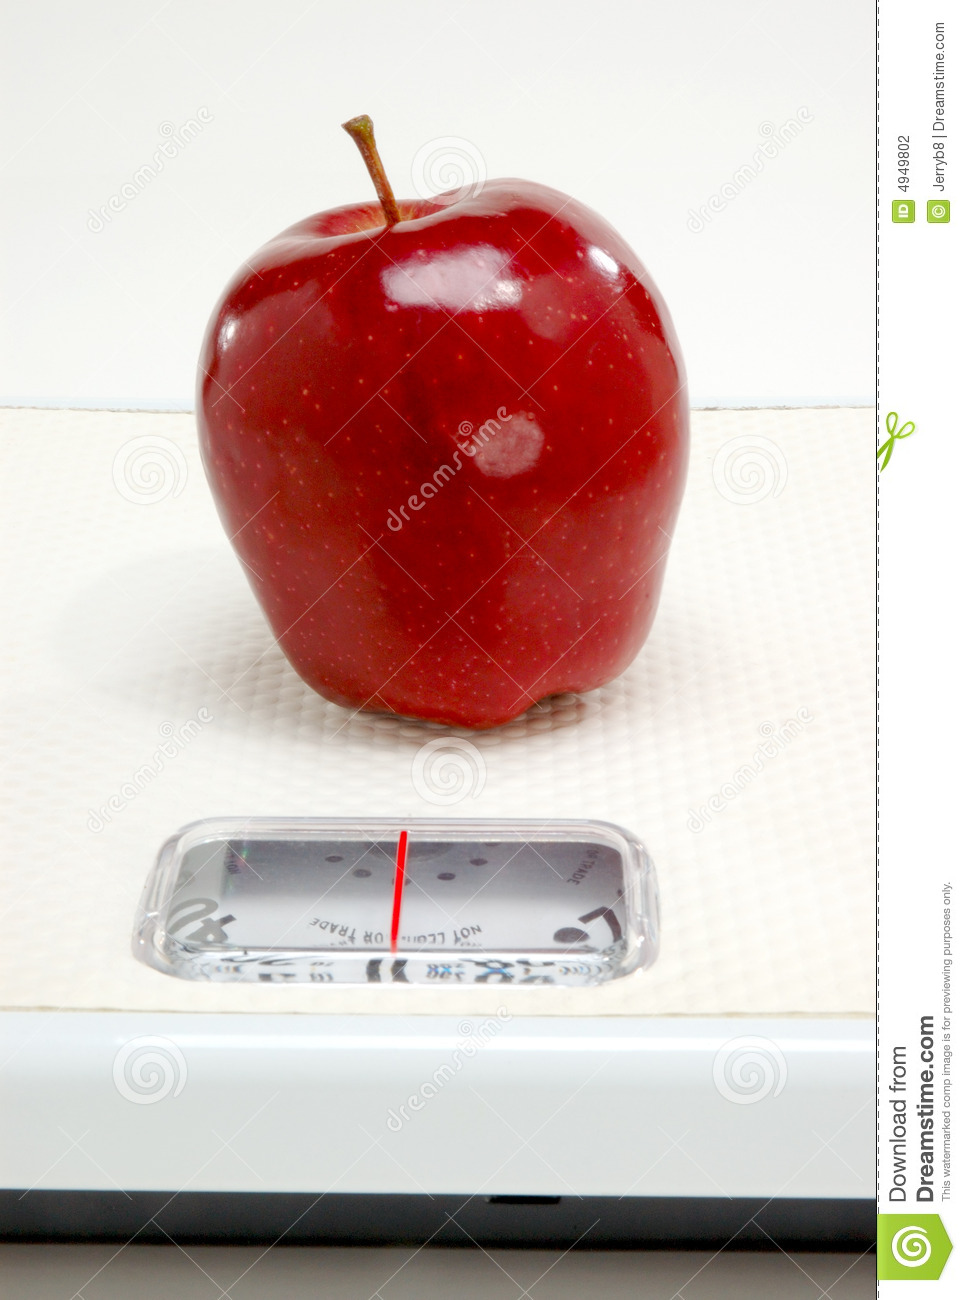 Red apple on scale